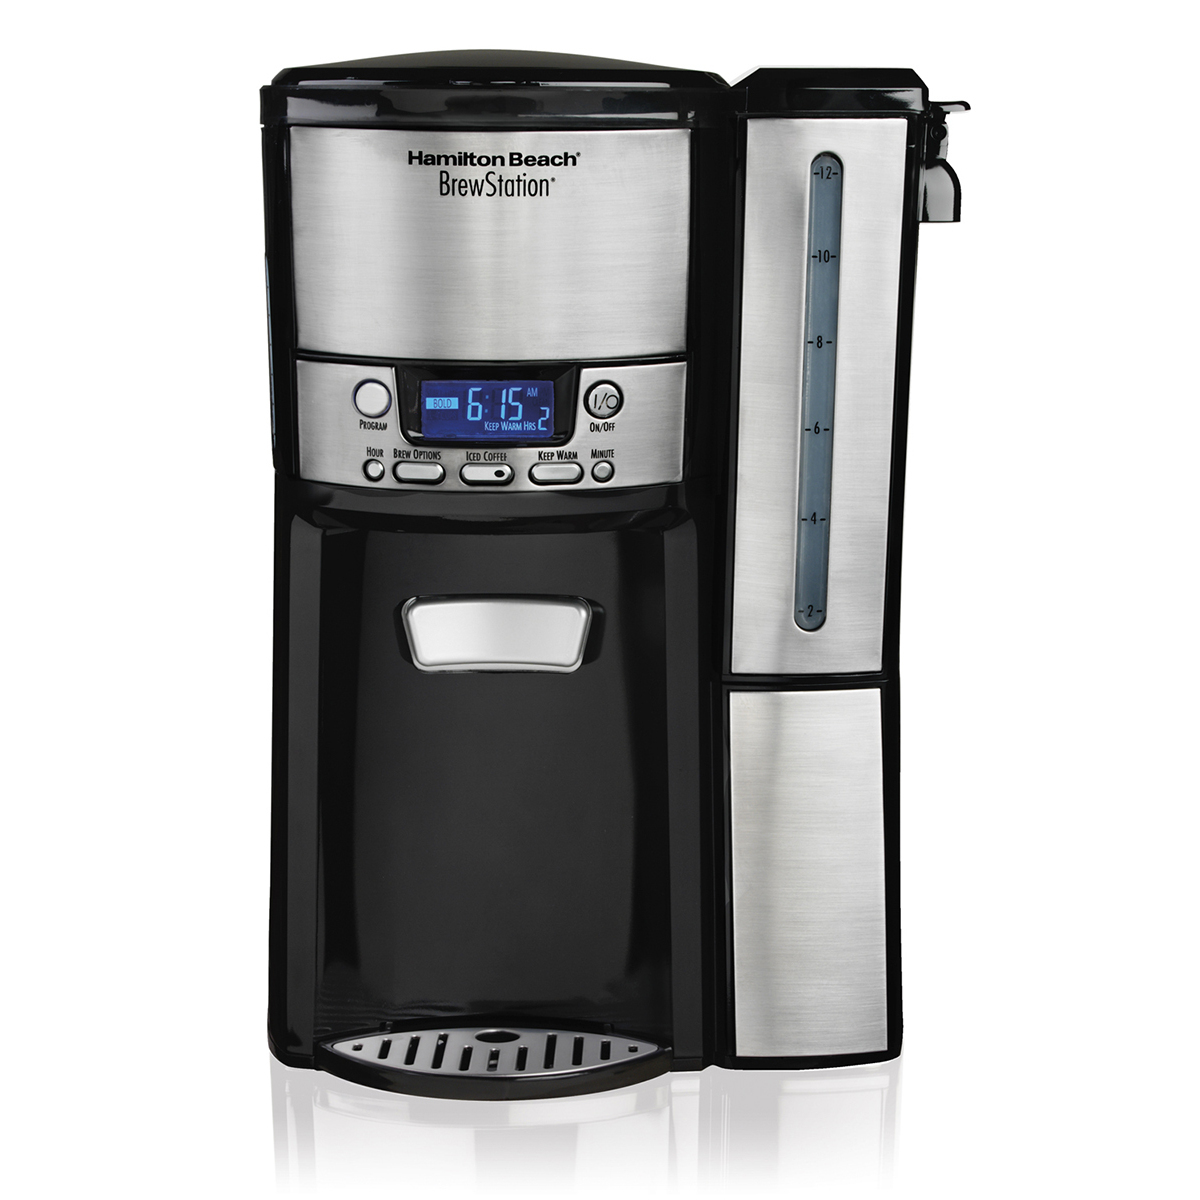 BrewStation® 12-Cup Programmable Coffee Maker with Removable Water Reservoir, Black & Stainless (47950)26030